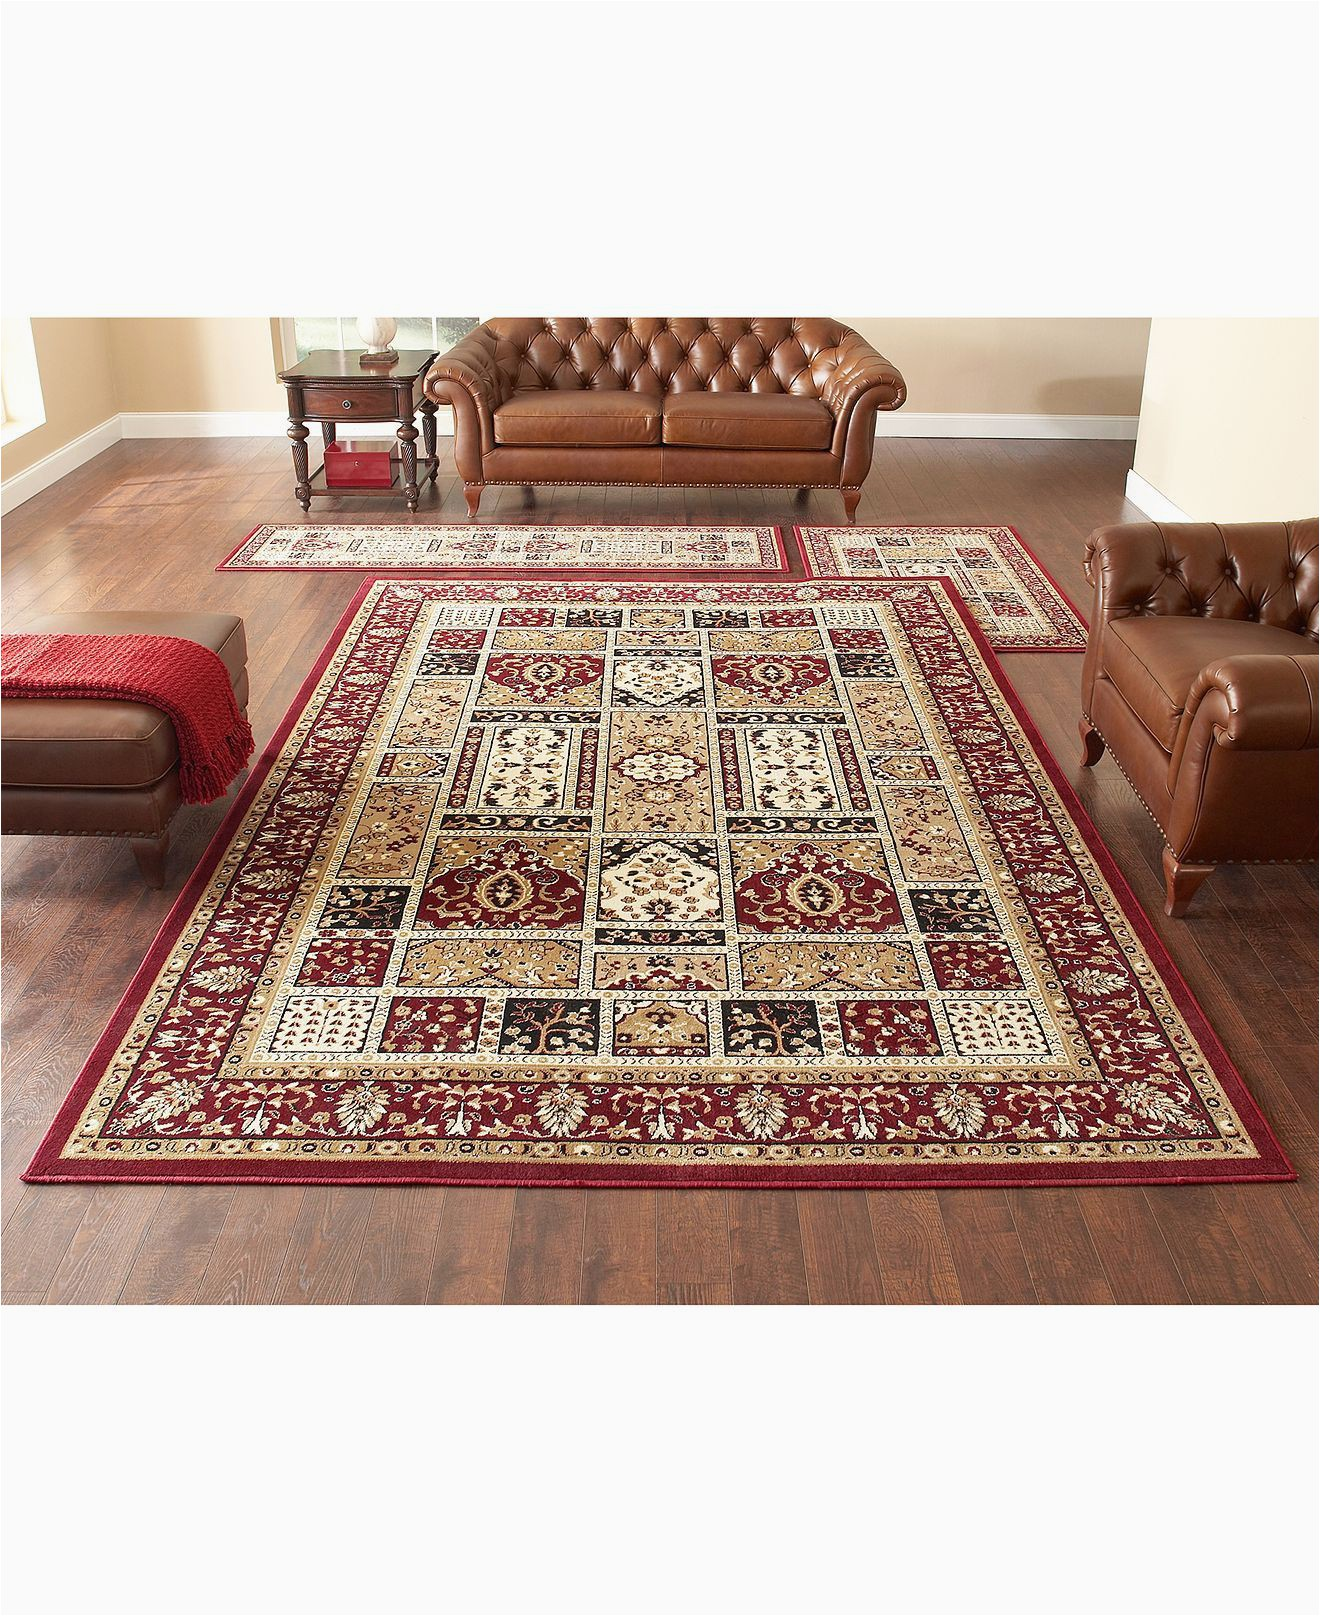 3 Piece area Rug Sets Sale Km Home Kenneth Mink area Rug Set Roma Collection 3 Piece